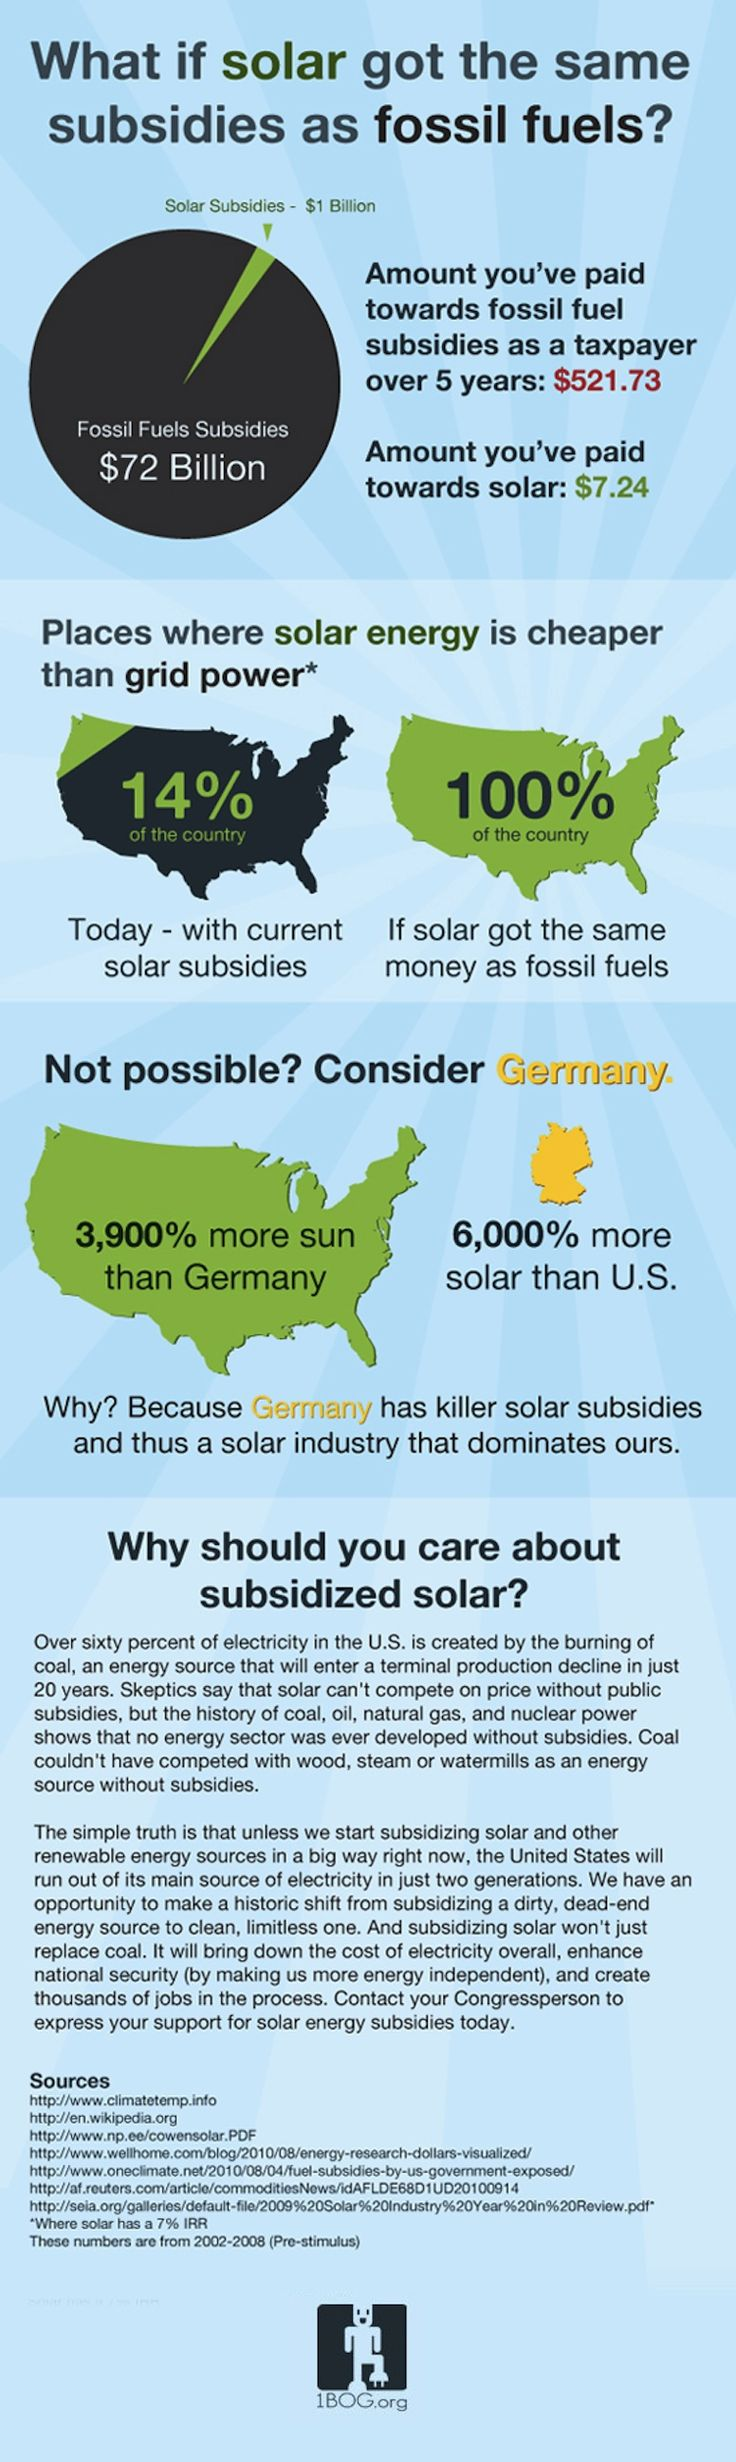 Solar energy must have pissed off the wrong congressman, because that's the only explanation for not subsidizing it.